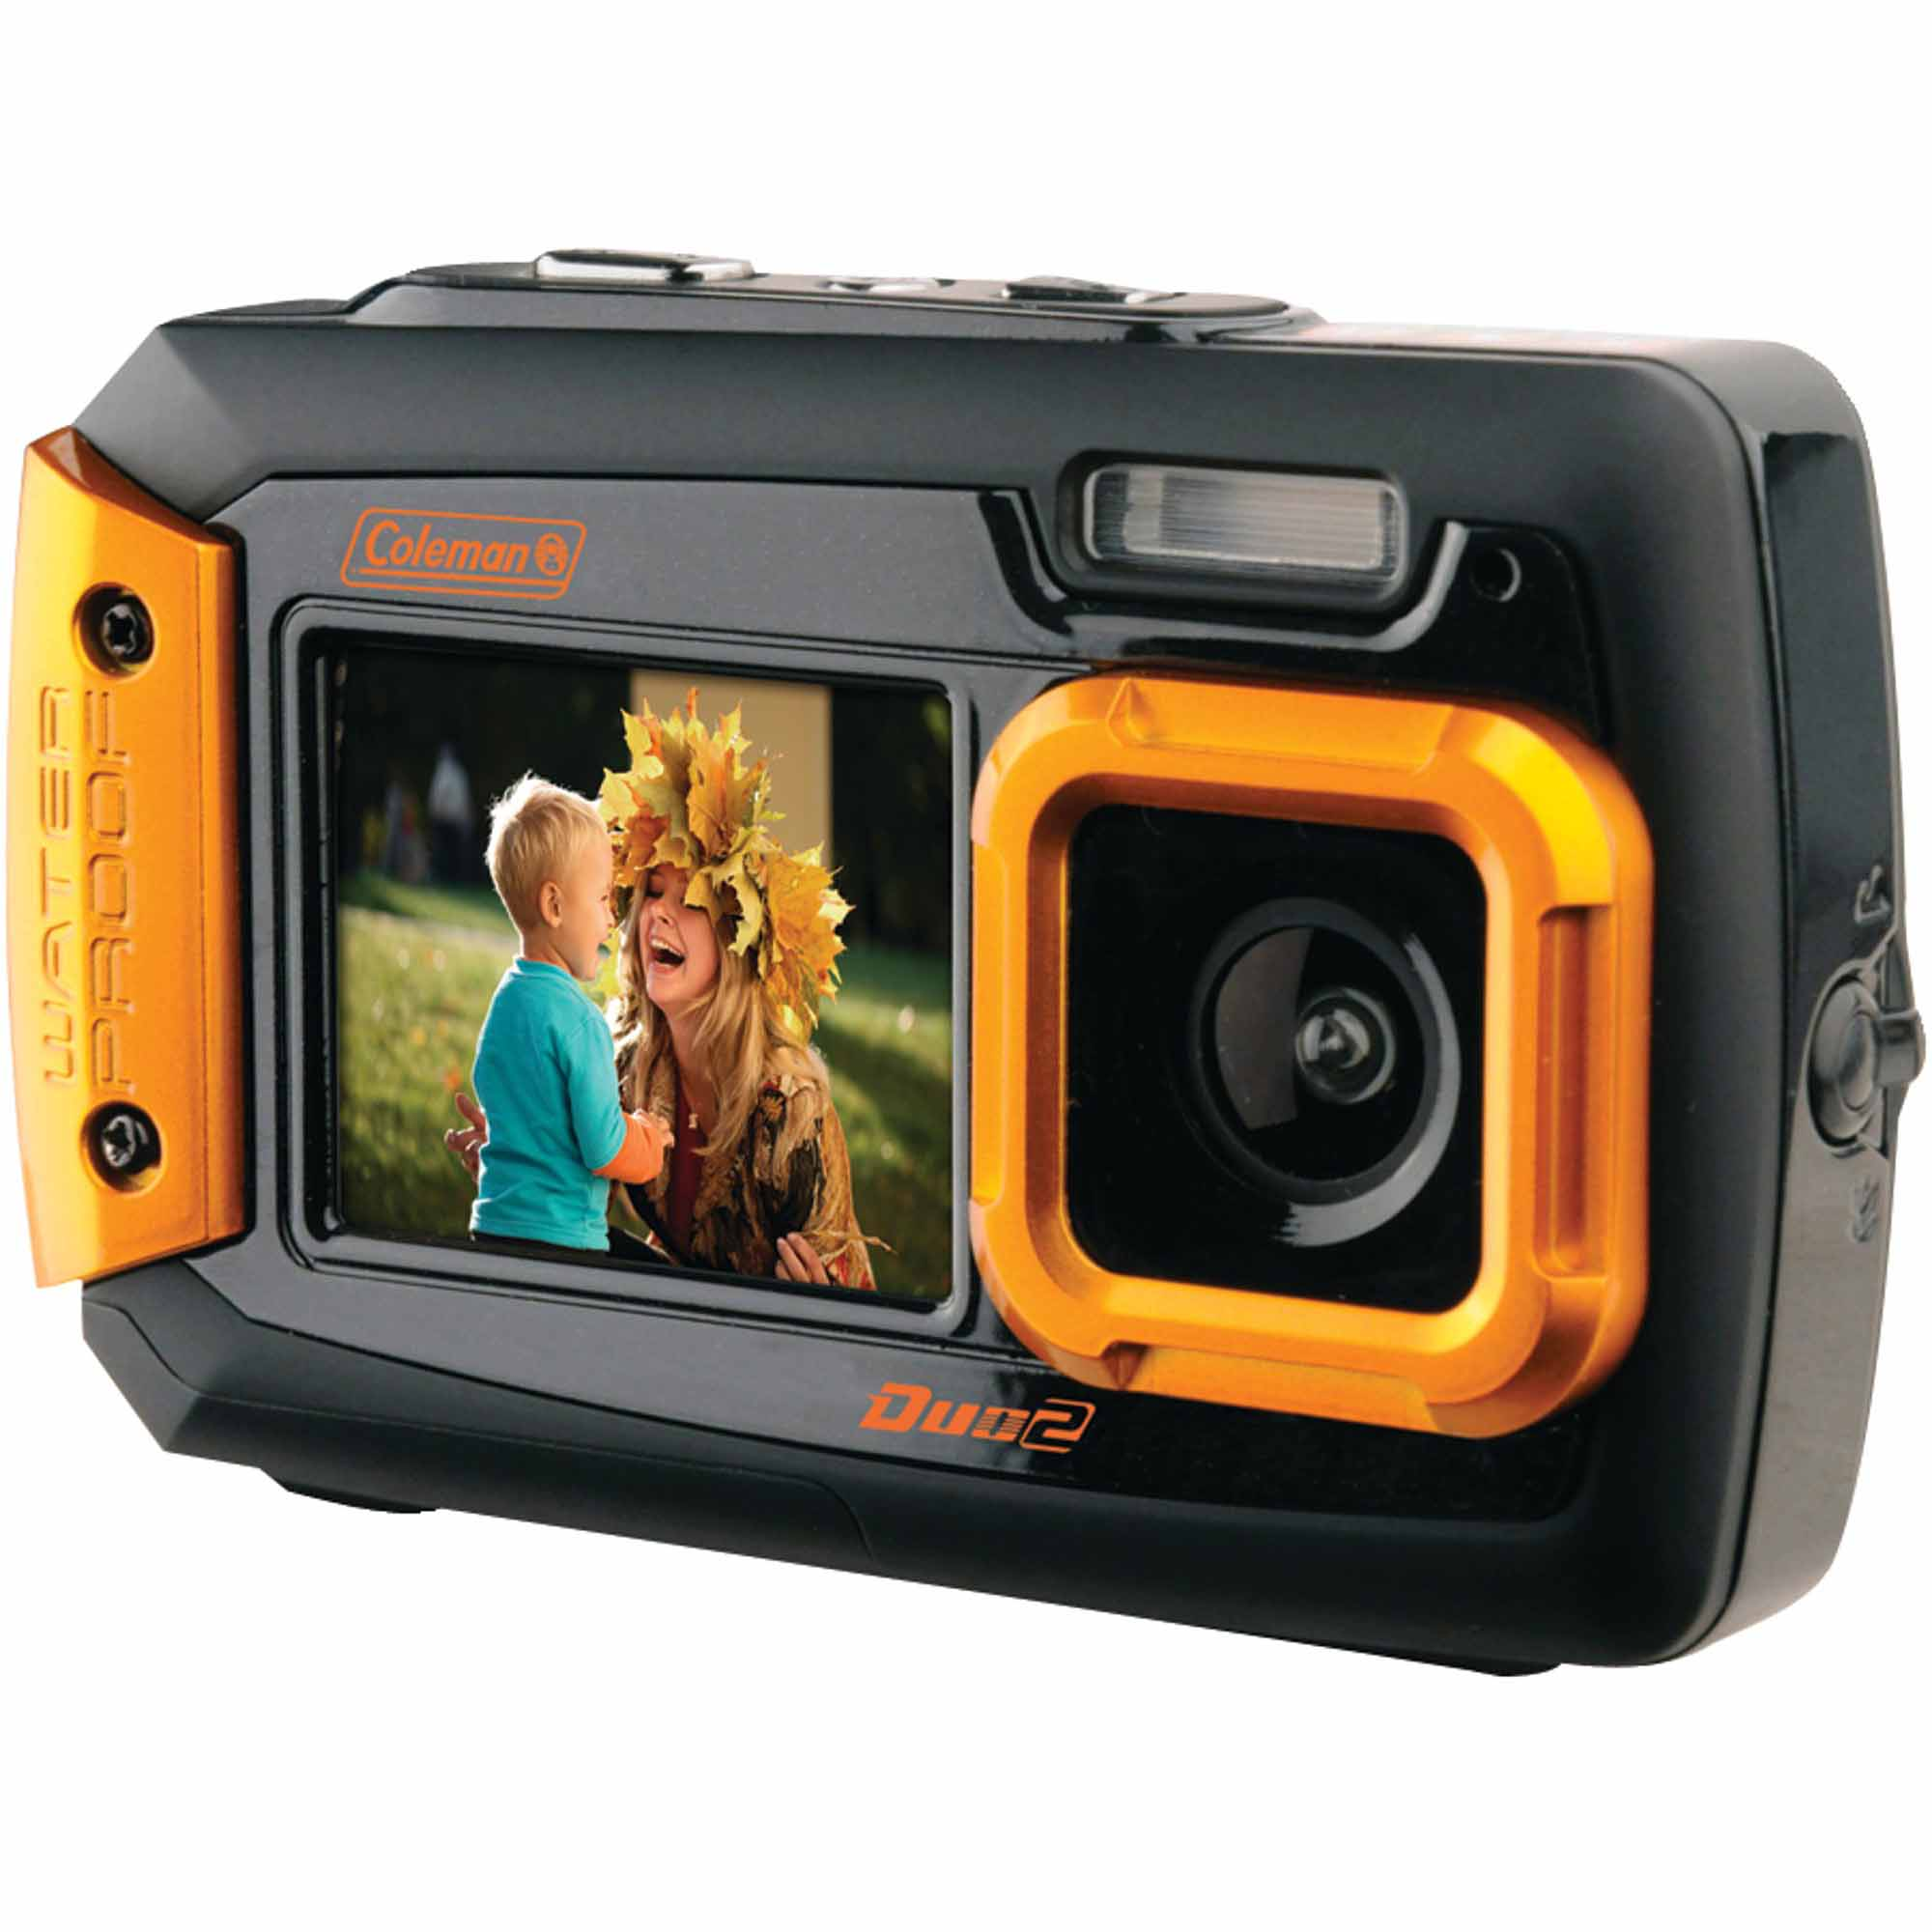 Coleman 2V9WP Duo2 Dual-Screen Waterproof 20MP Digital Camera, Orange